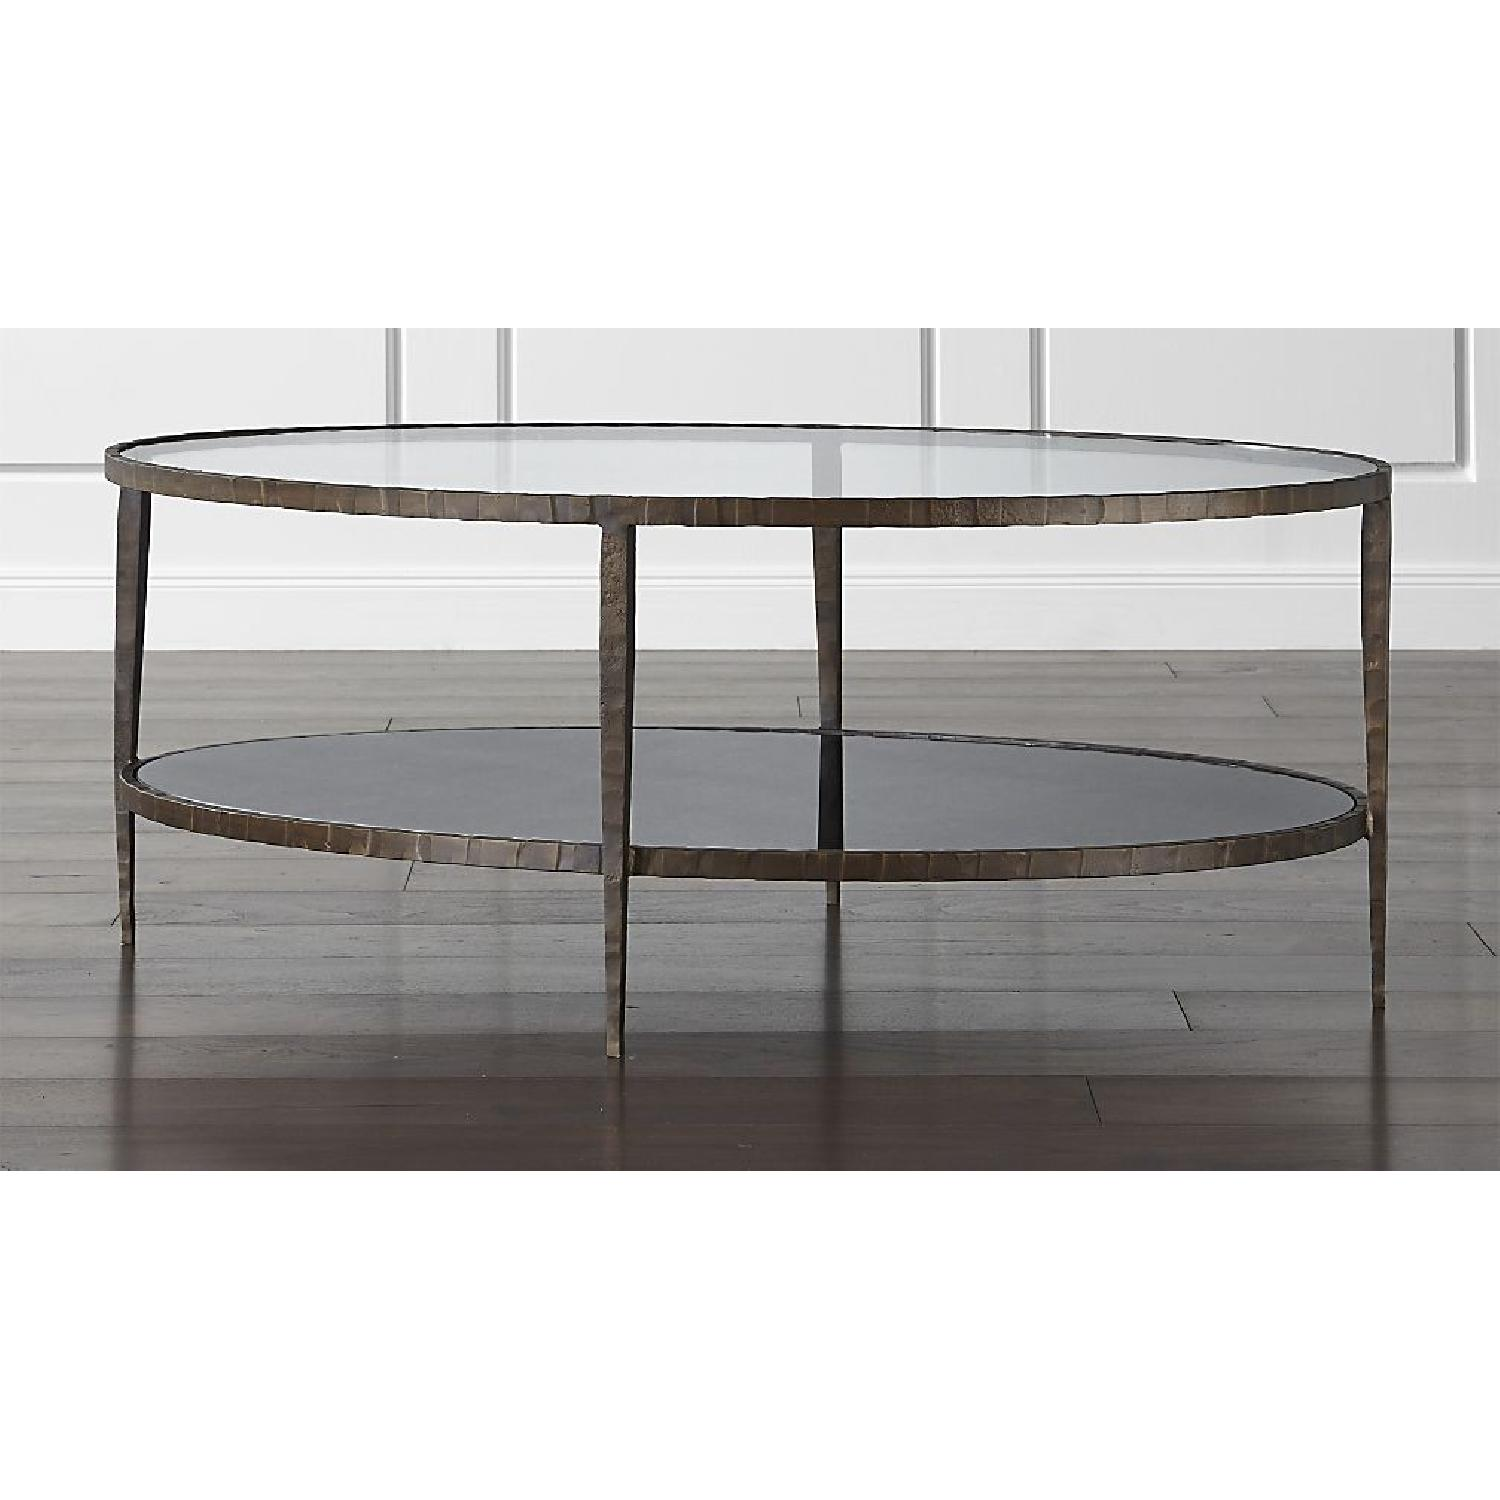 Crate & Barrel Claremont Oval Coffee Table - image-1